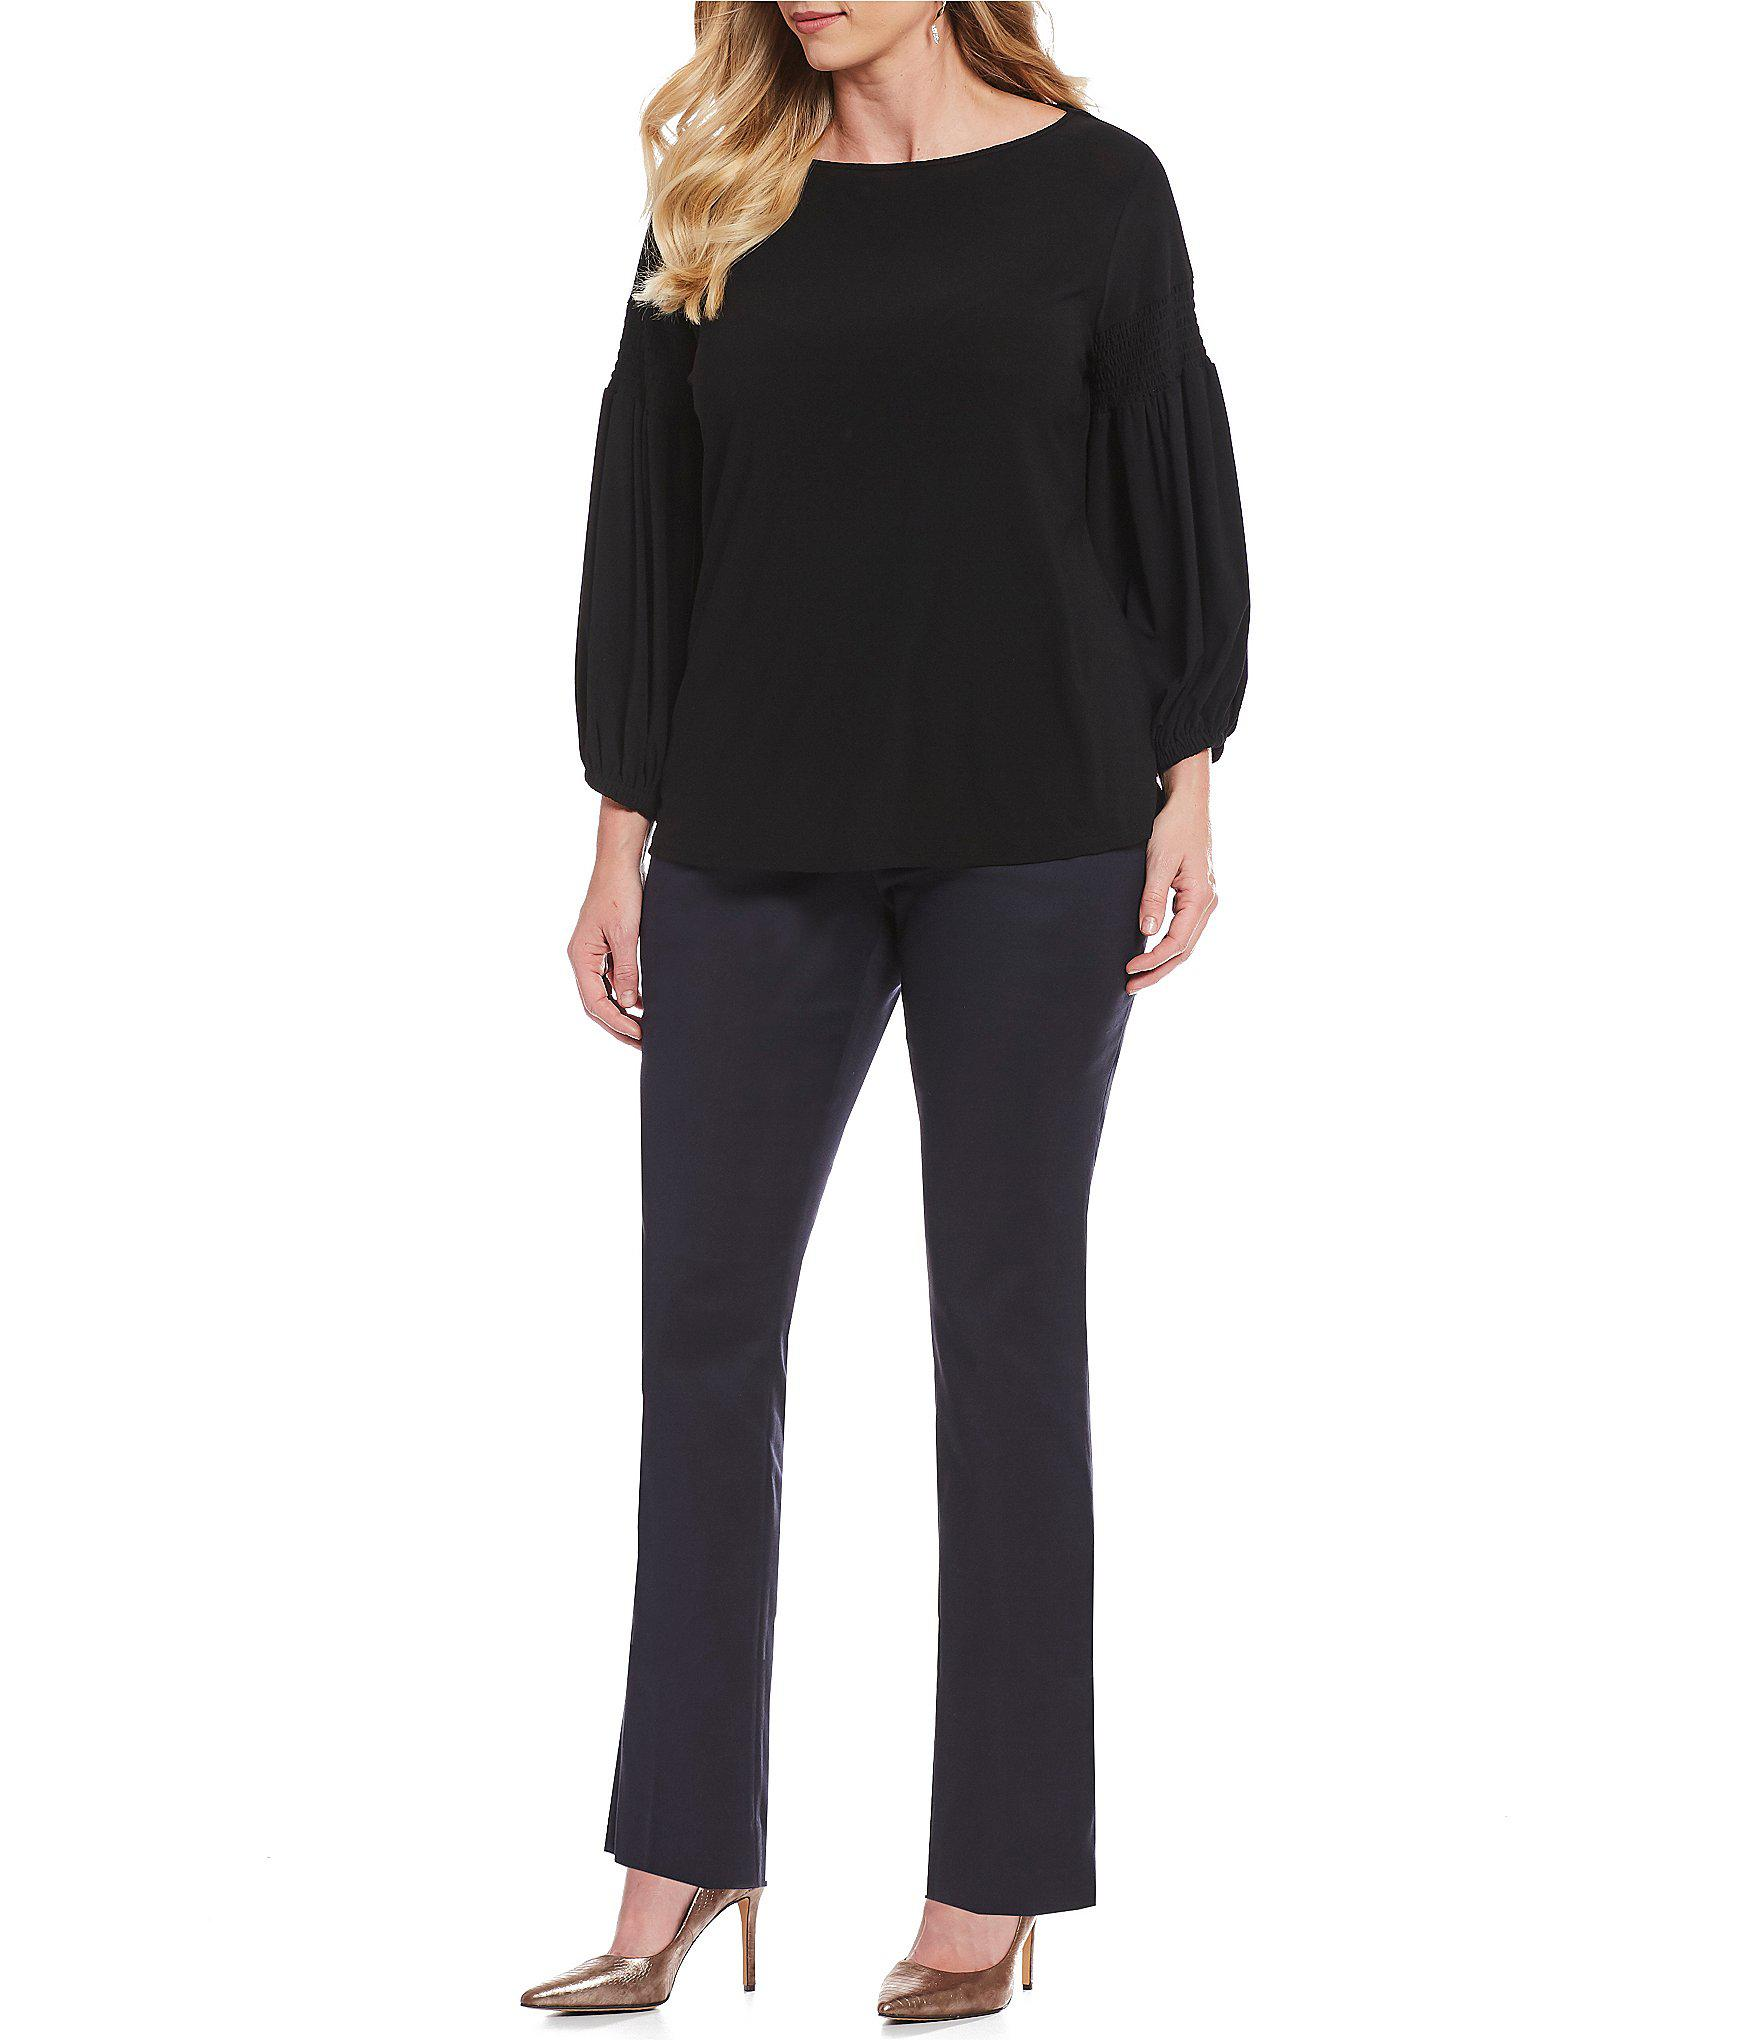 b485ff5c8e5e9 Lyst - Cece Plus Size Crepe Knit Smocked Balloon Sleeve Top in Black